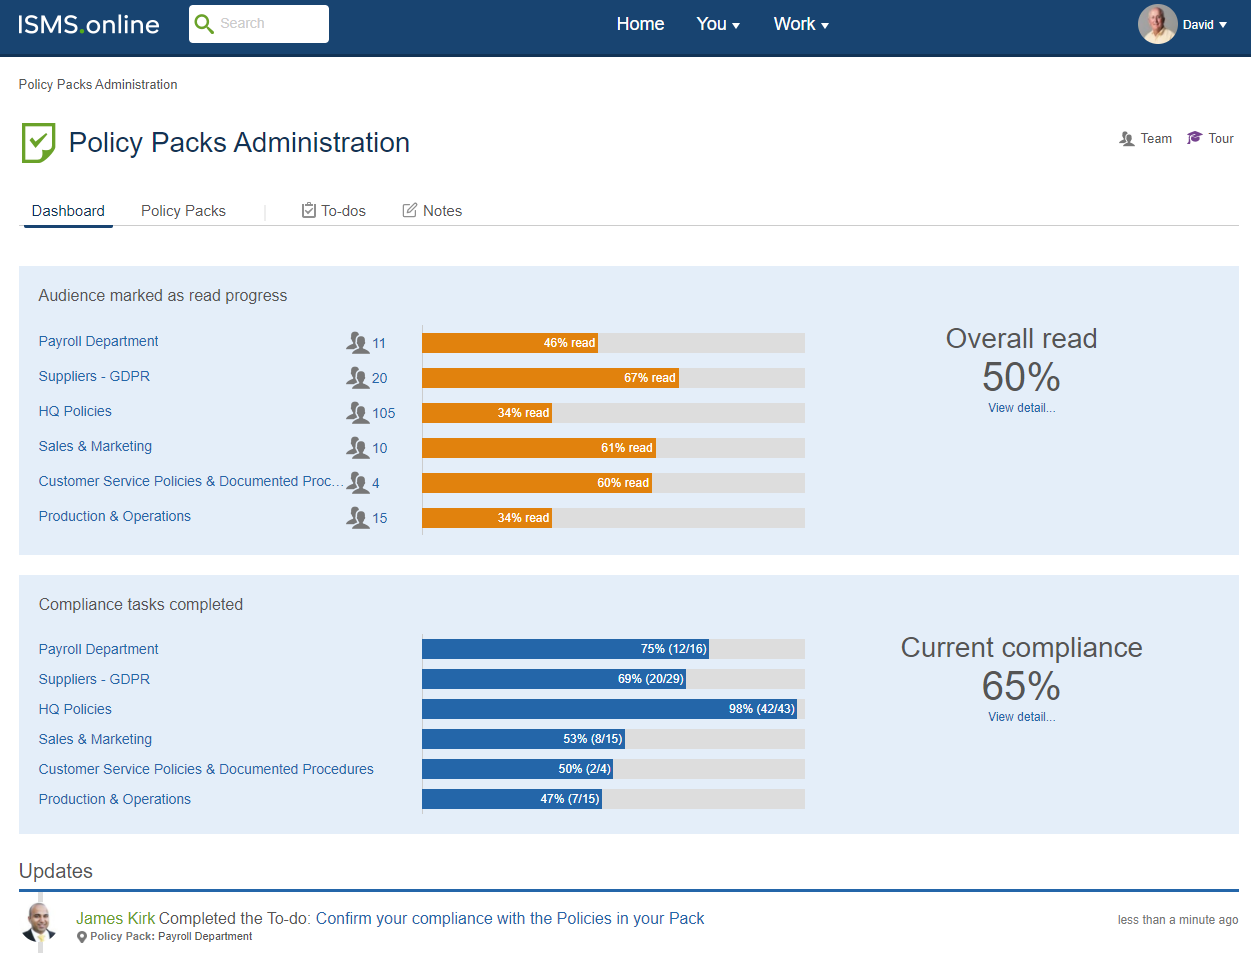 An image of the policy packs administration area on ISMS.online